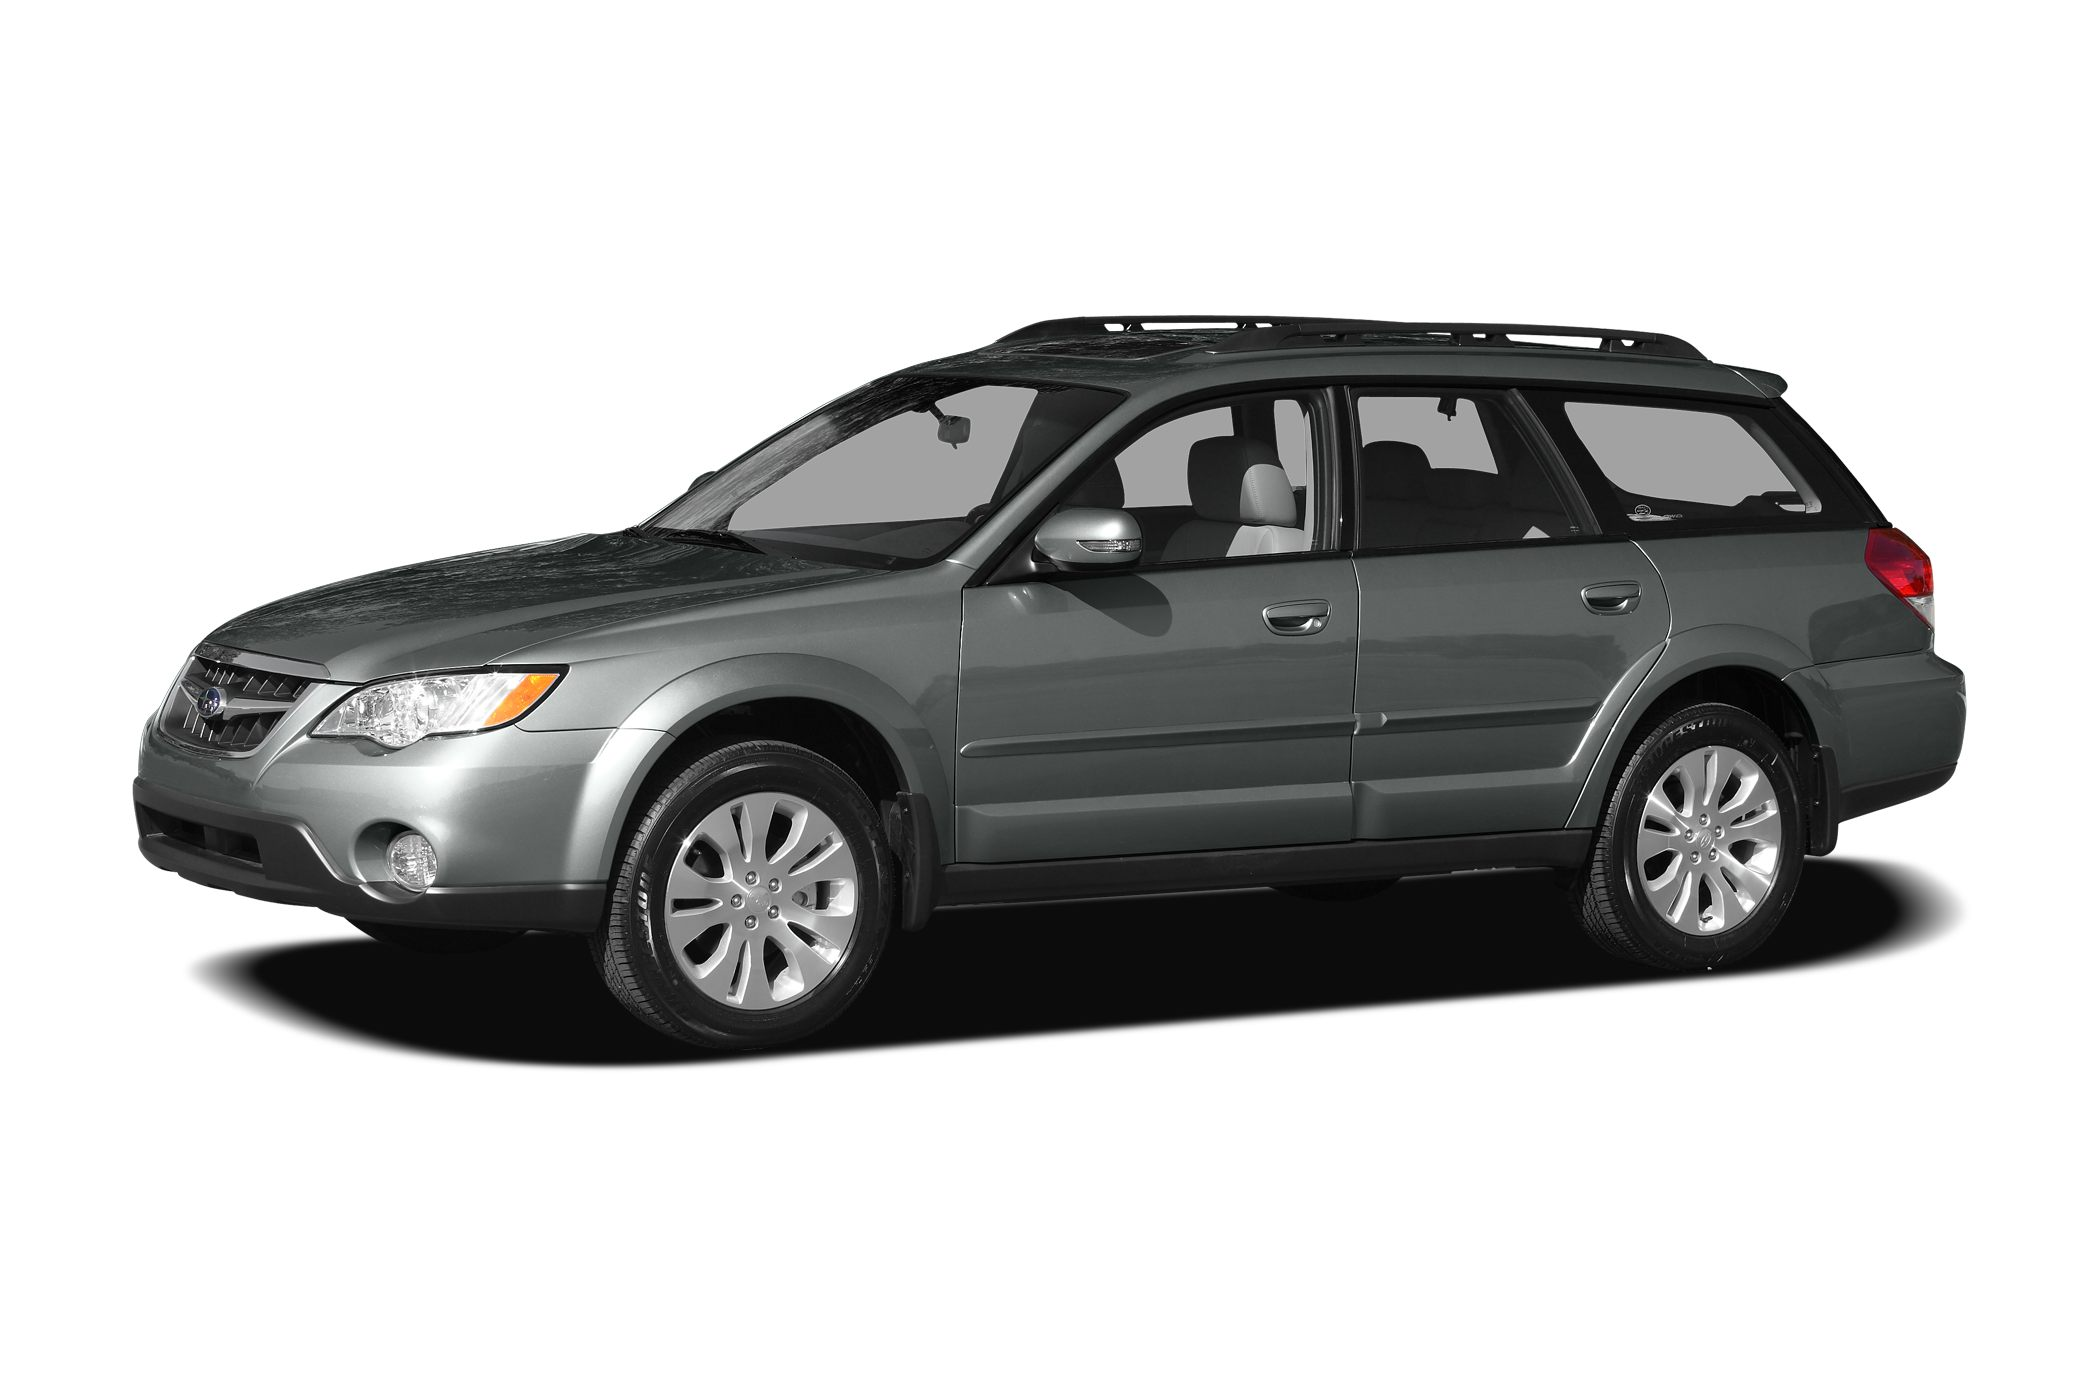 2008 Subaru Outback Wagon for sale in Tacoma for $14,995 with 98,364 miles